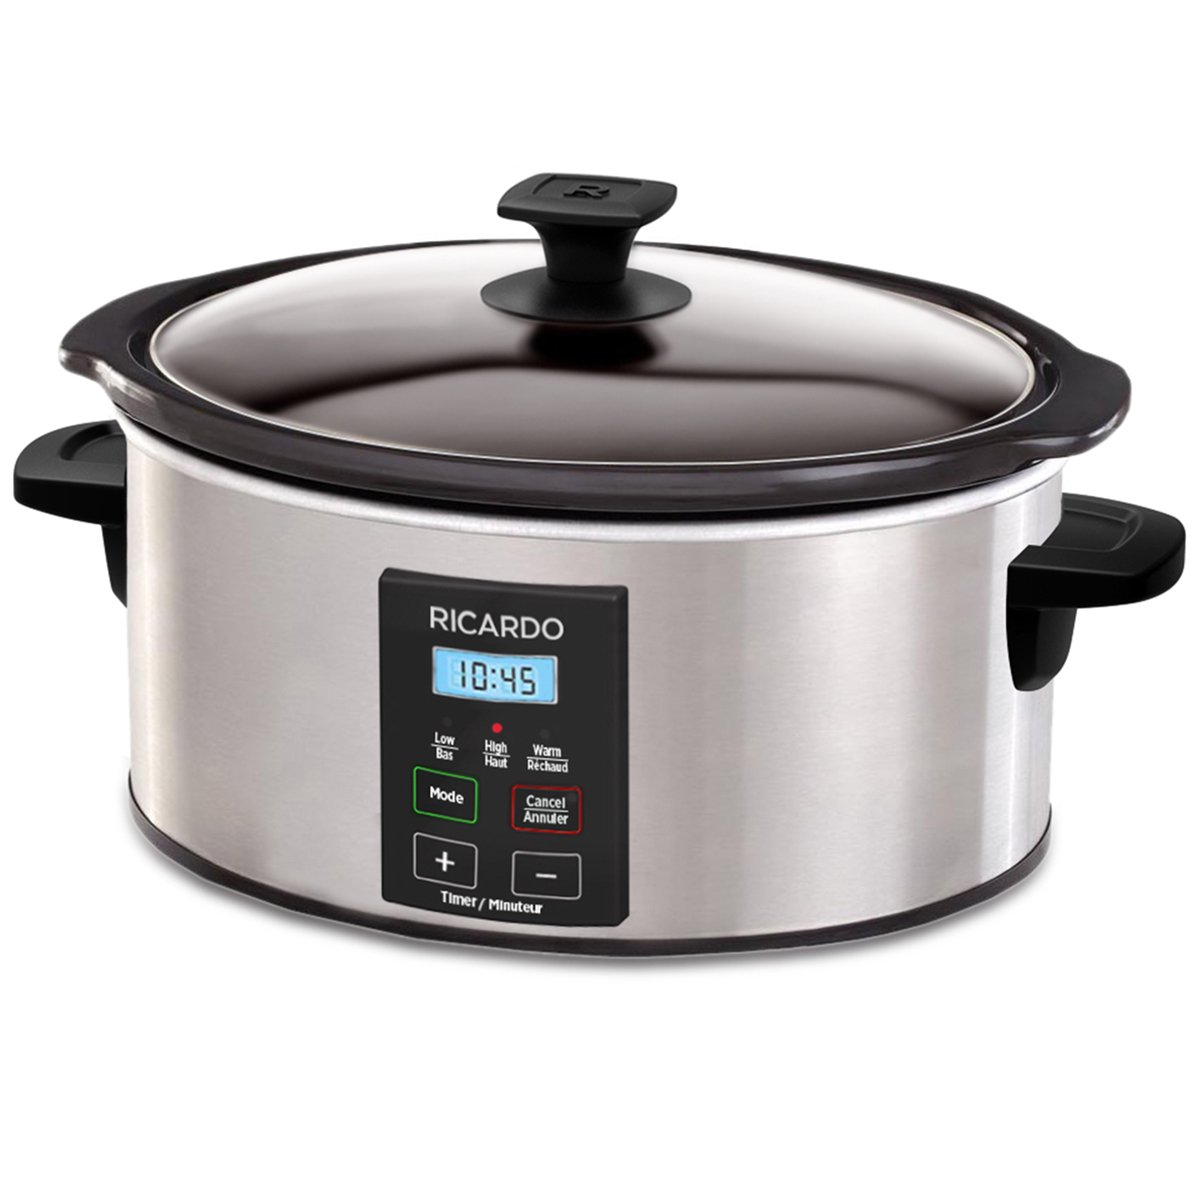 Ricardo Slow Cooker, 6 Quart Stainless Steel Exterior Finish Switch Automatically To Keep Warm Setting